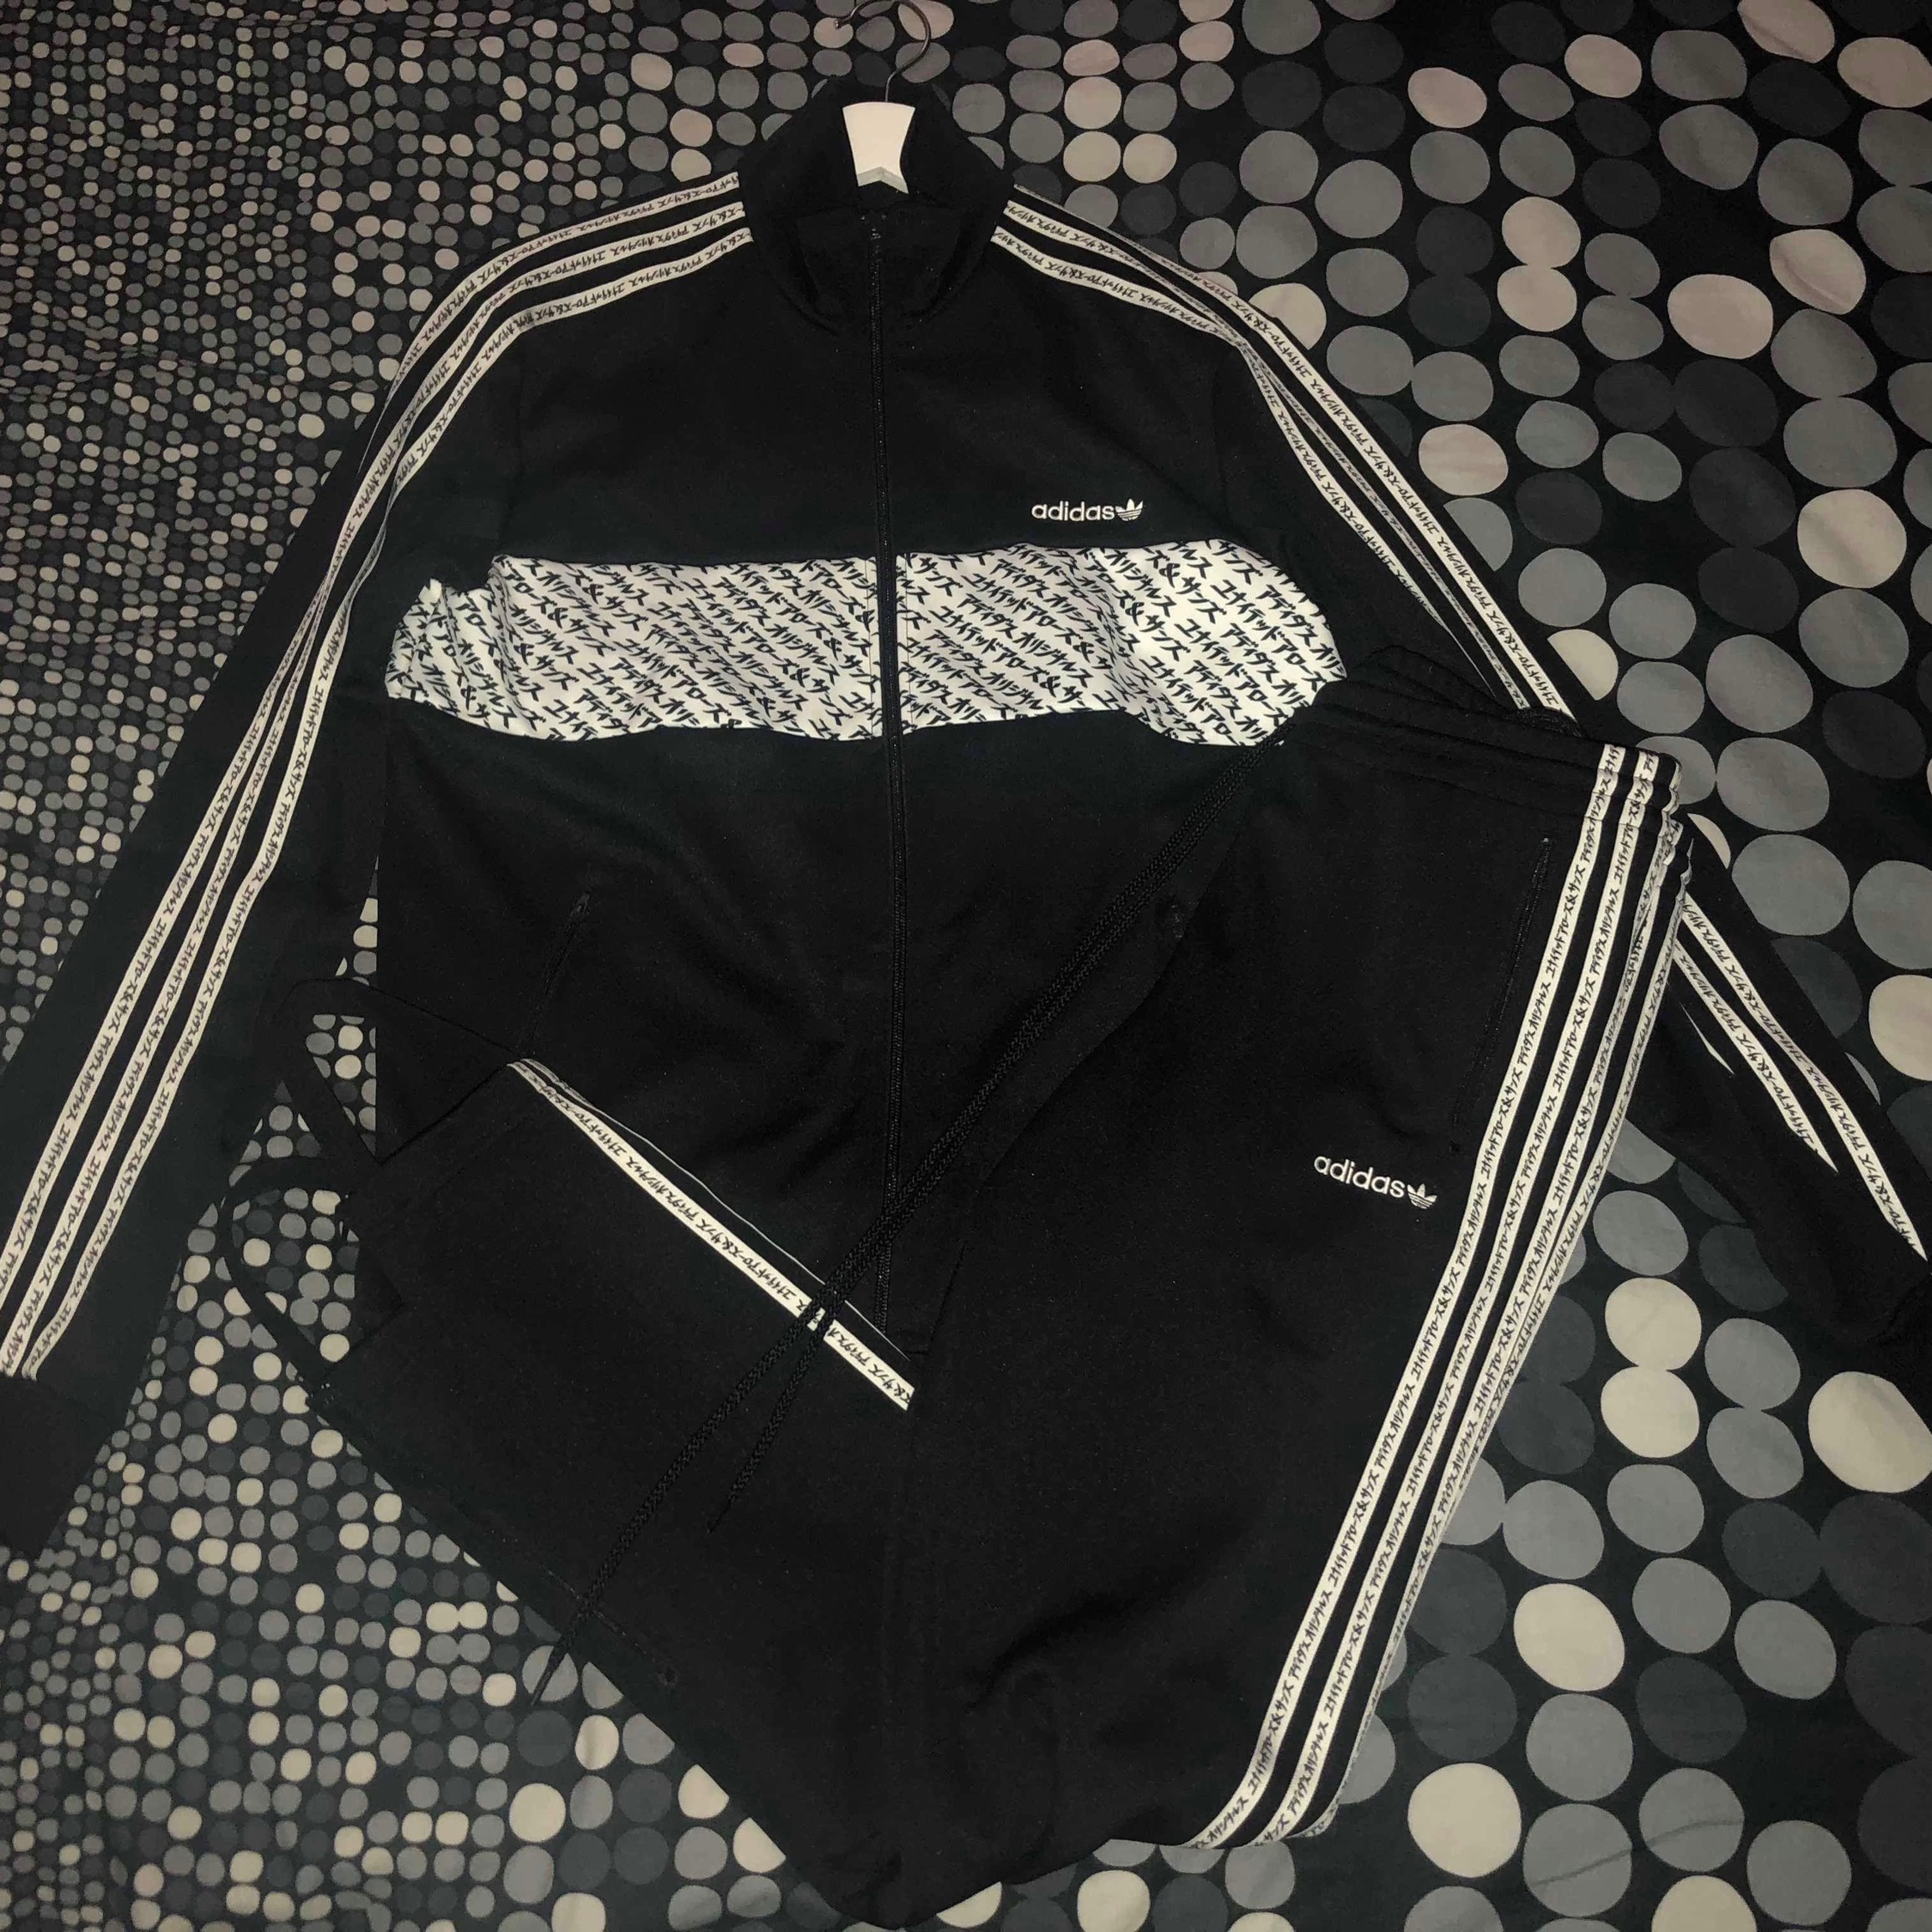 premium selection 4bd93 93c55 Tracksuits Adidas X Mikitype